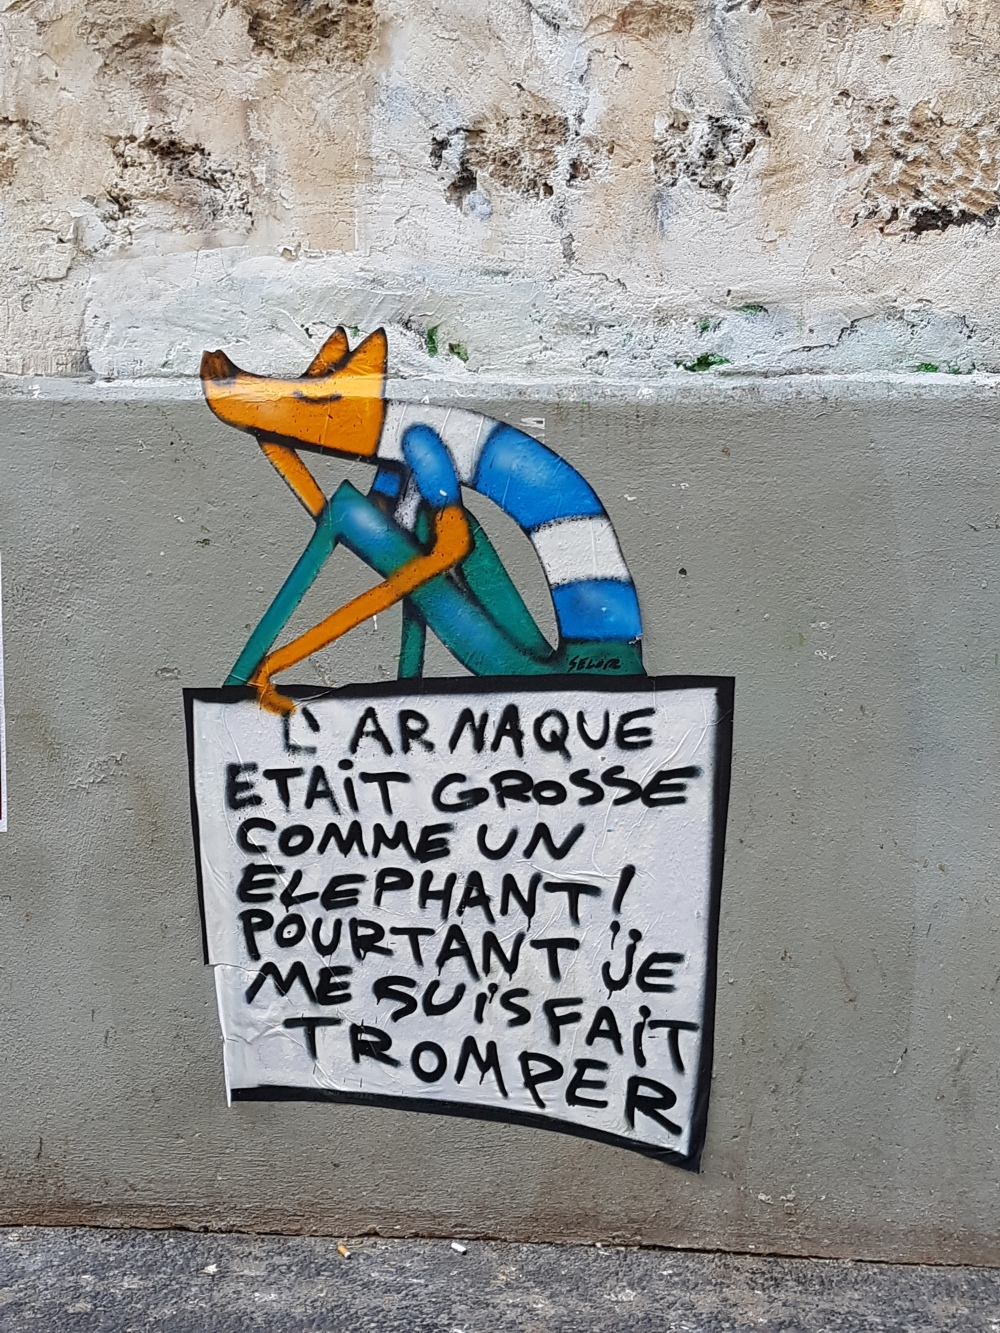 david selor street art paris 11